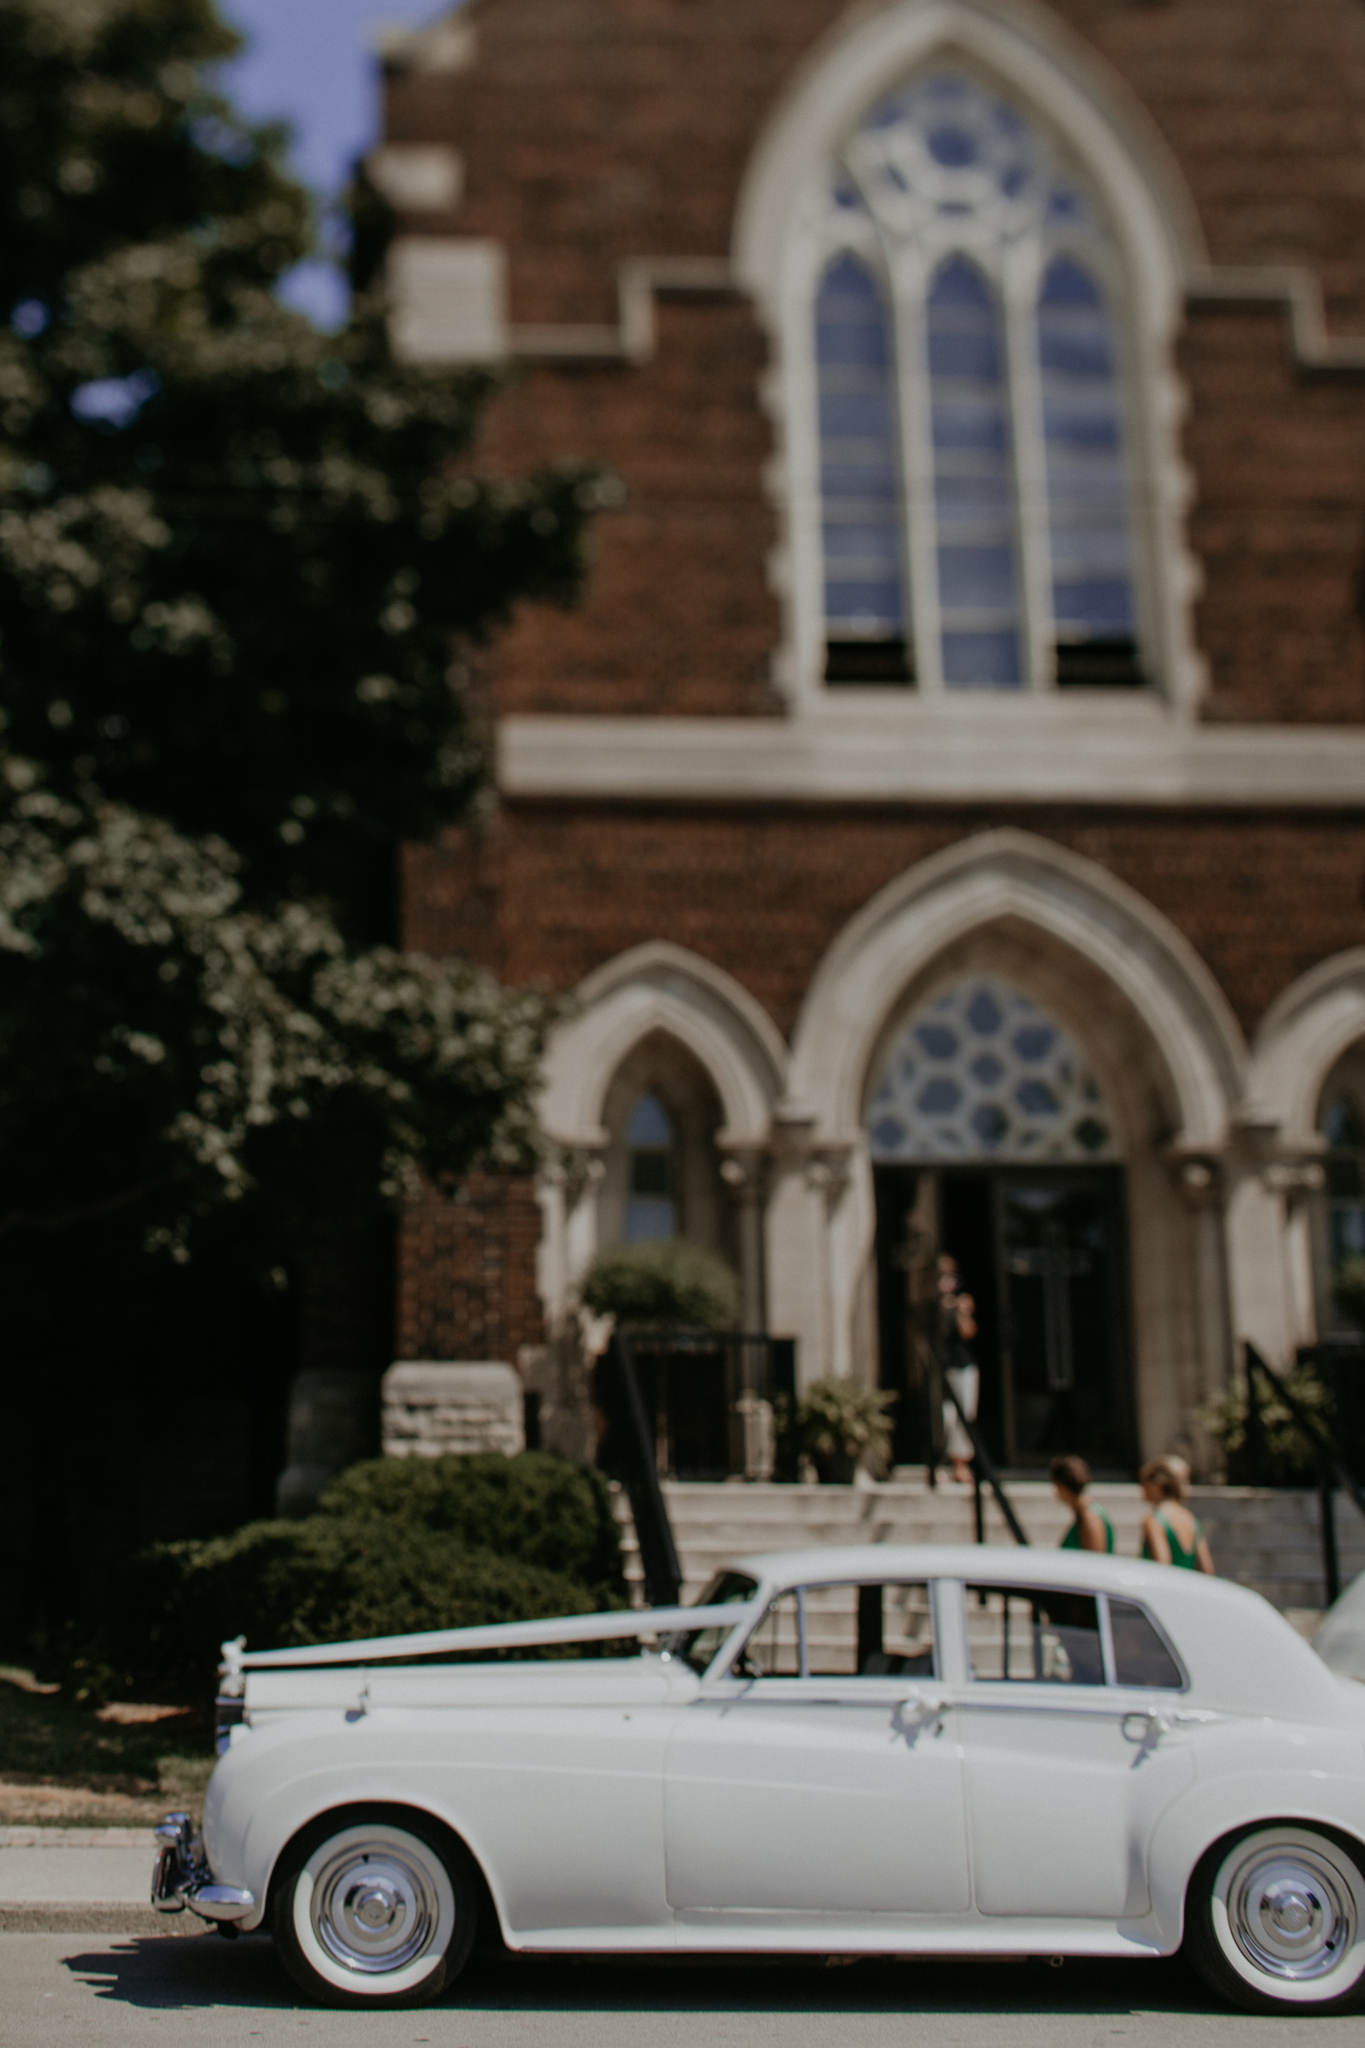 Rolls Royce parked outside church at wedding ceremony